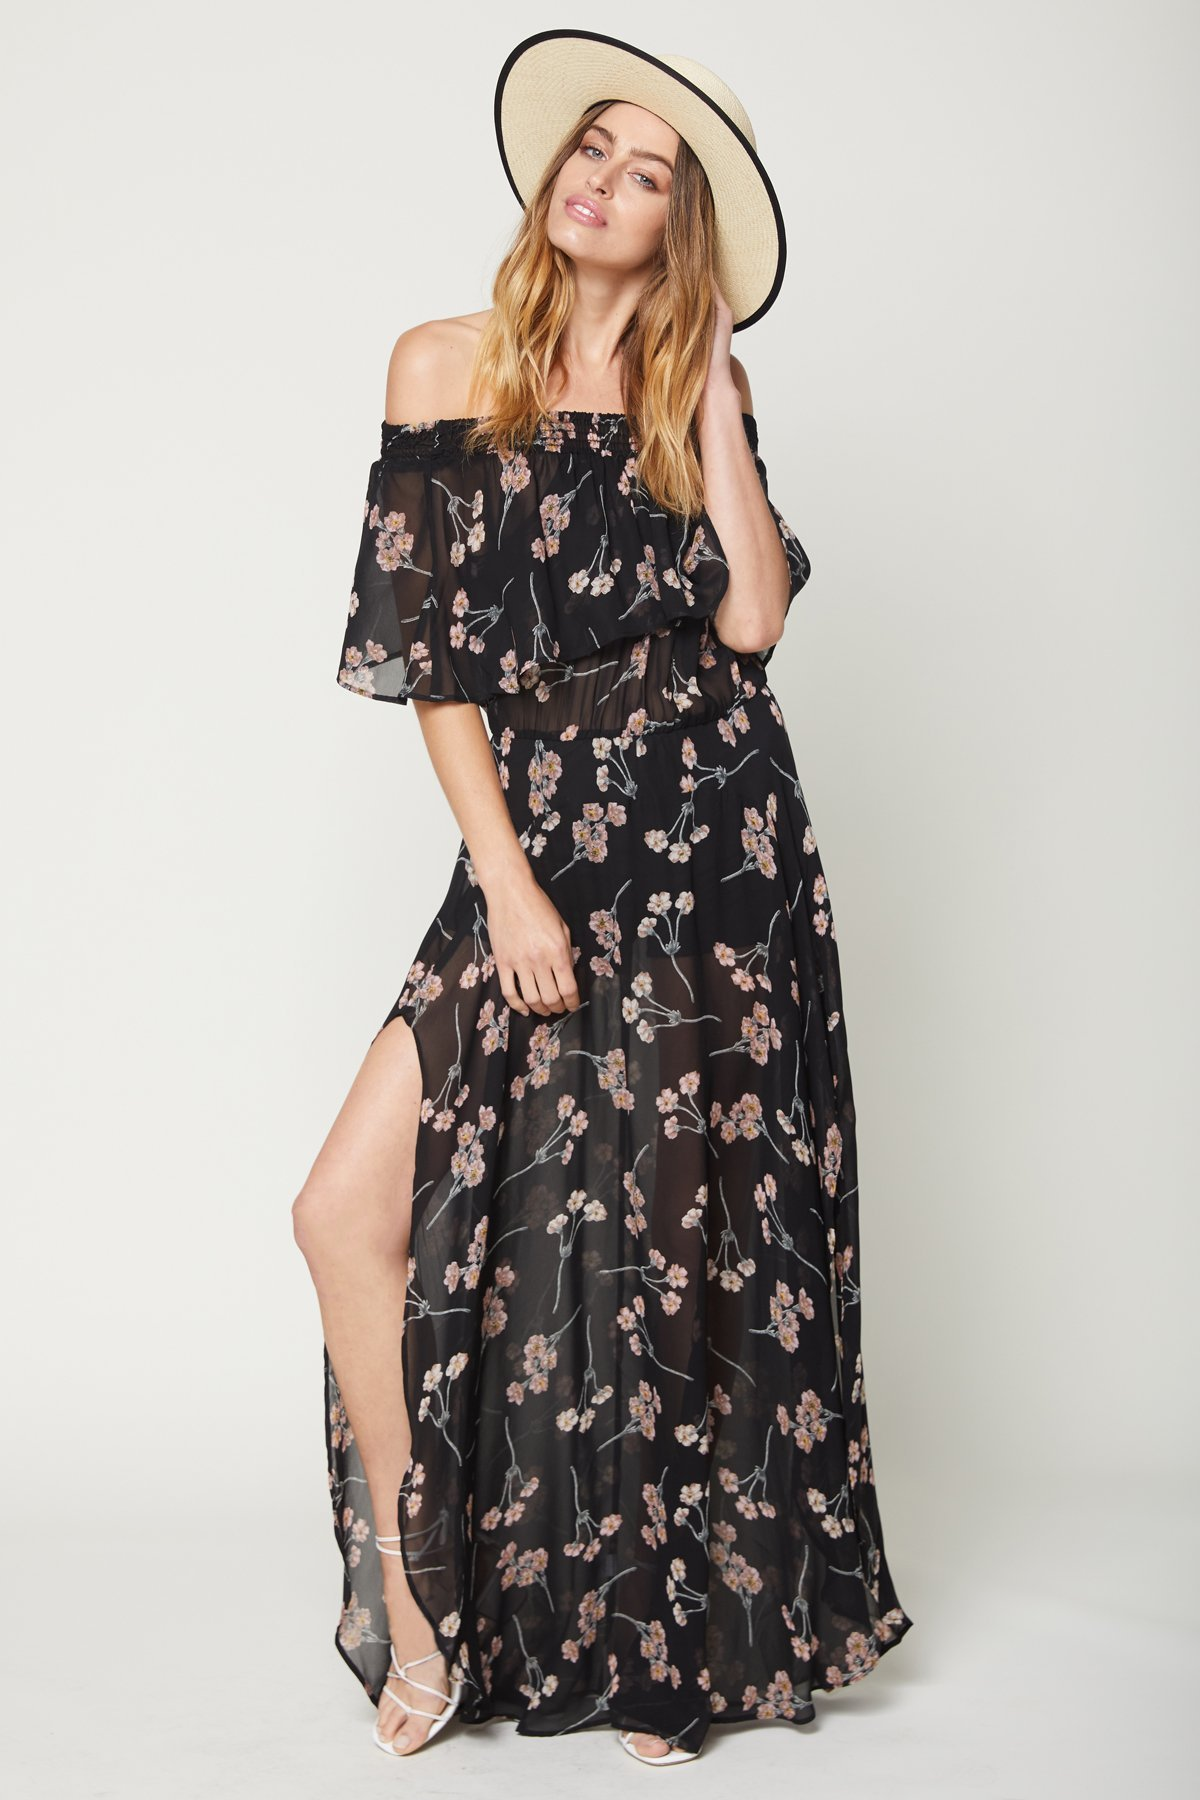 Miranda Maxi Dress in Black Cherry Blossom from Brigitte & Stone